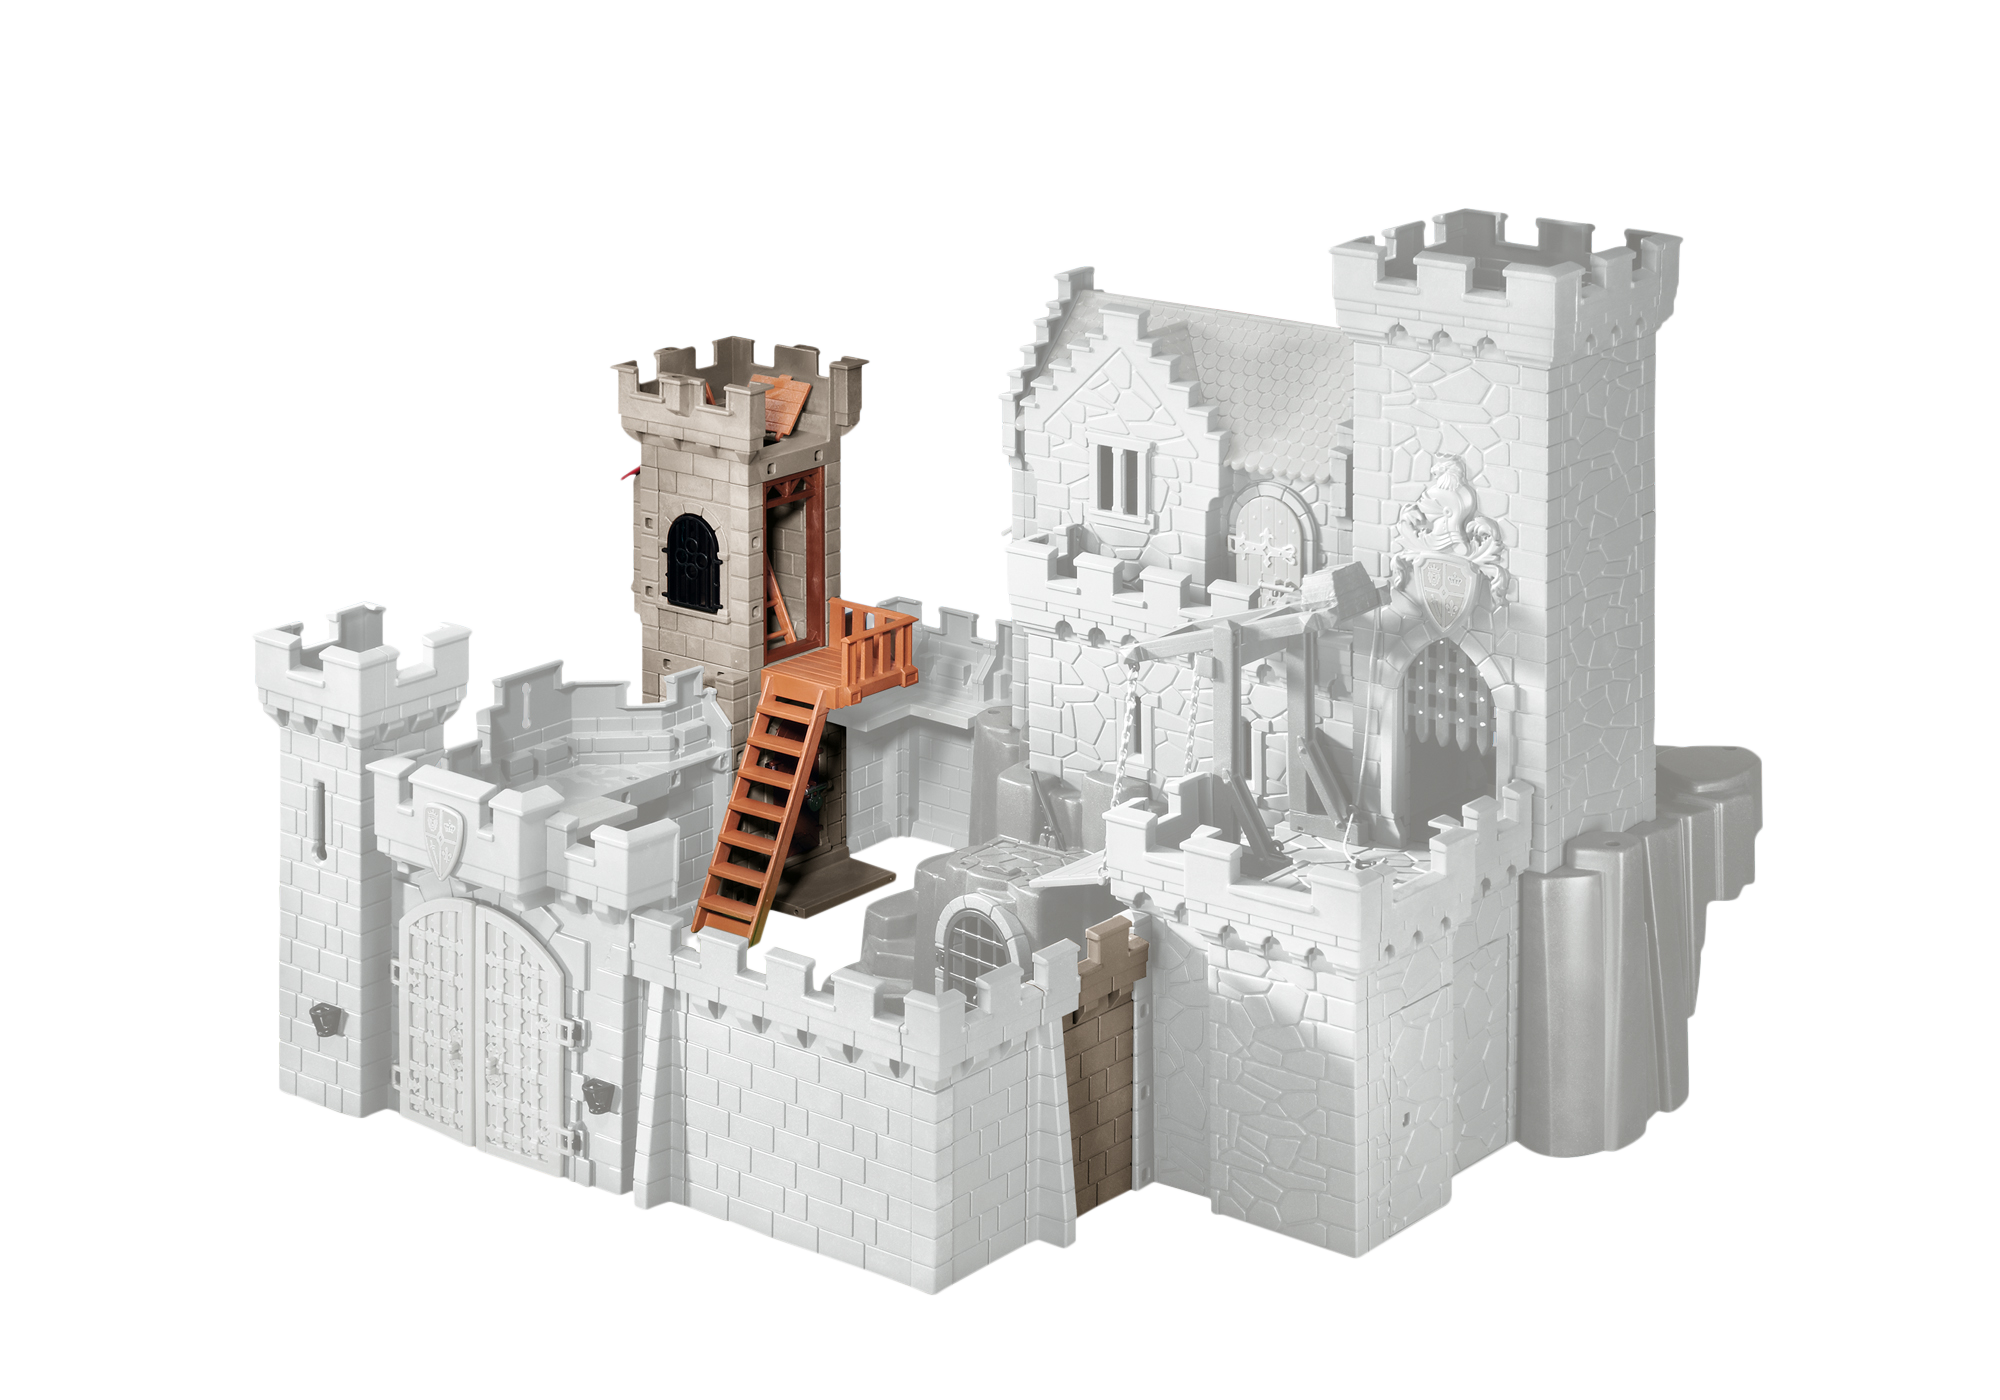 http://media.playmobil.com/i/playmobil/6373_product_detail/Tower extension for Royal Lion Knight's Castle and Hawk Knights'